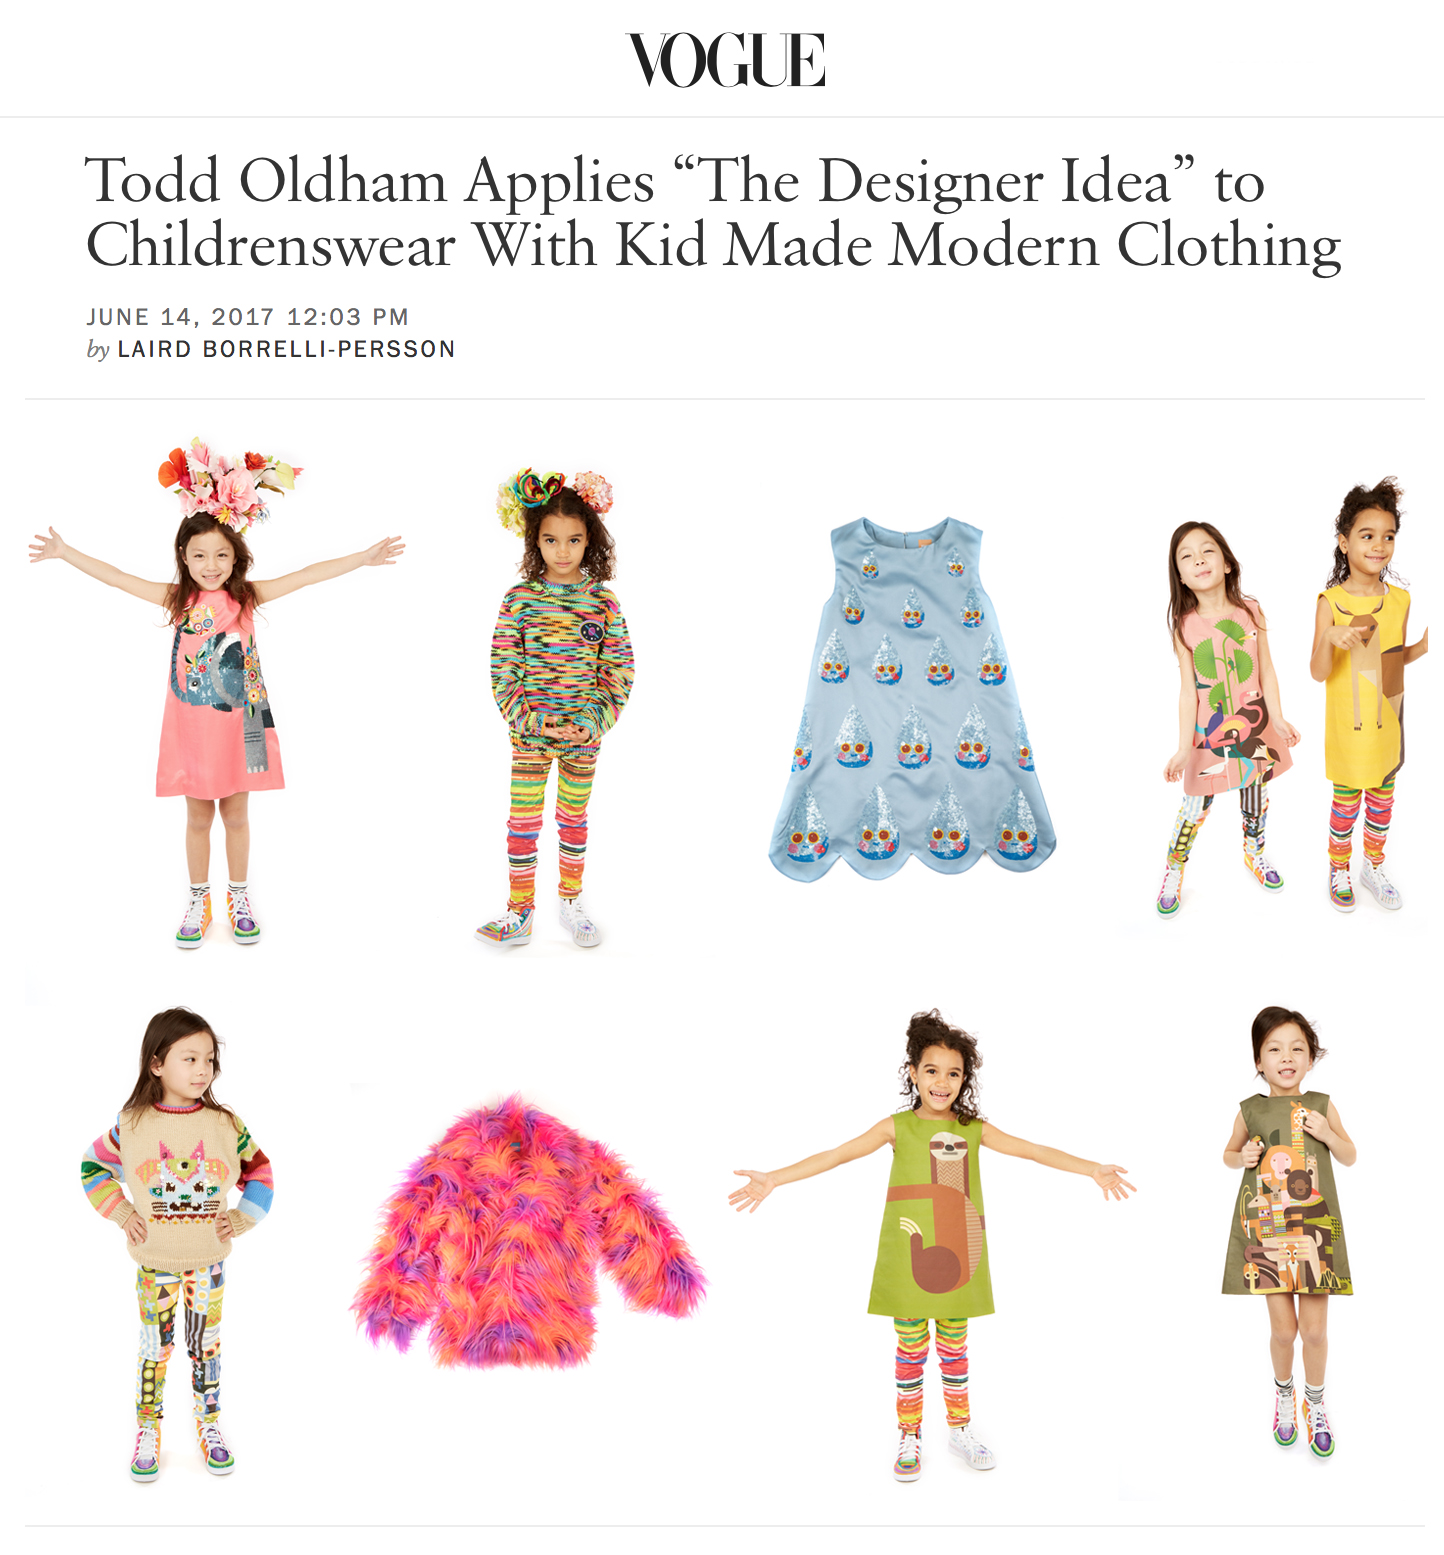 Kid made modern todd oldham studio vogue featured todd oldham and his studios newest addition to the kid made modern line kmm clothing is super fun colorful textural and educational buycottarizona Images